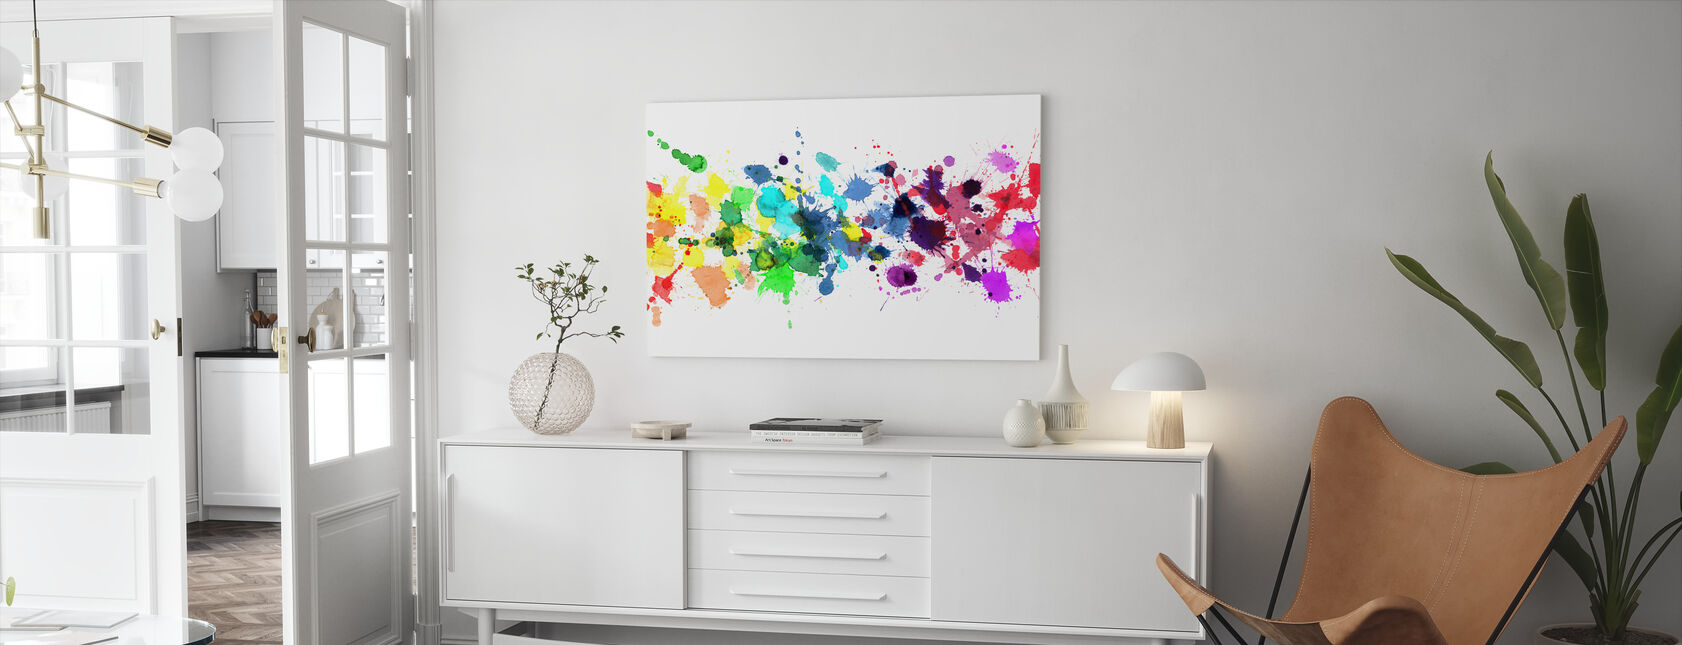 Watercolour Rainbow - Canvas print - Living Room